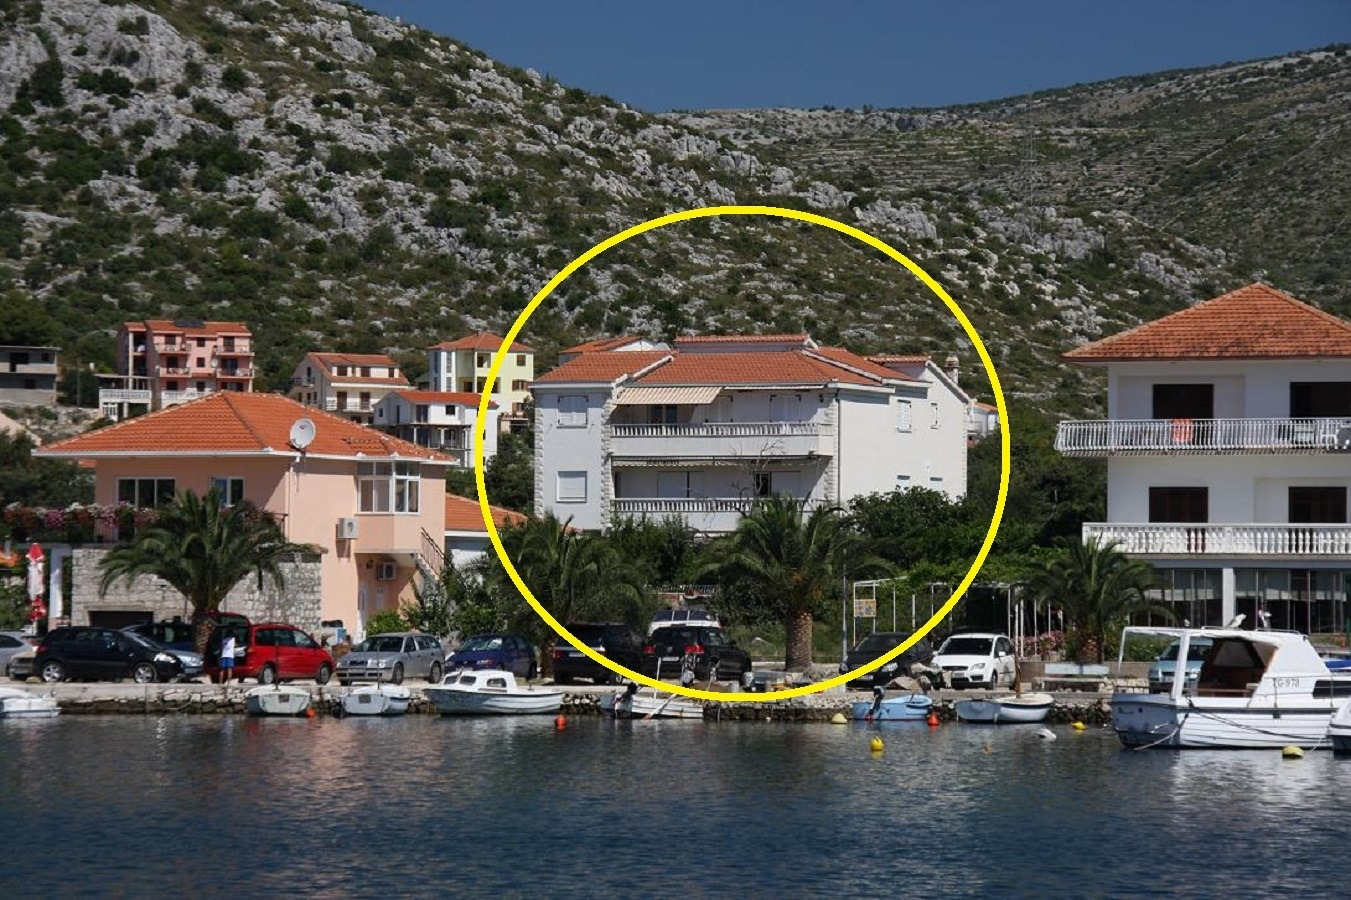 Apartments, Seget Vranjica, Trogir and surroundings - Apartments  Vesna - 40 m from pebble beach: